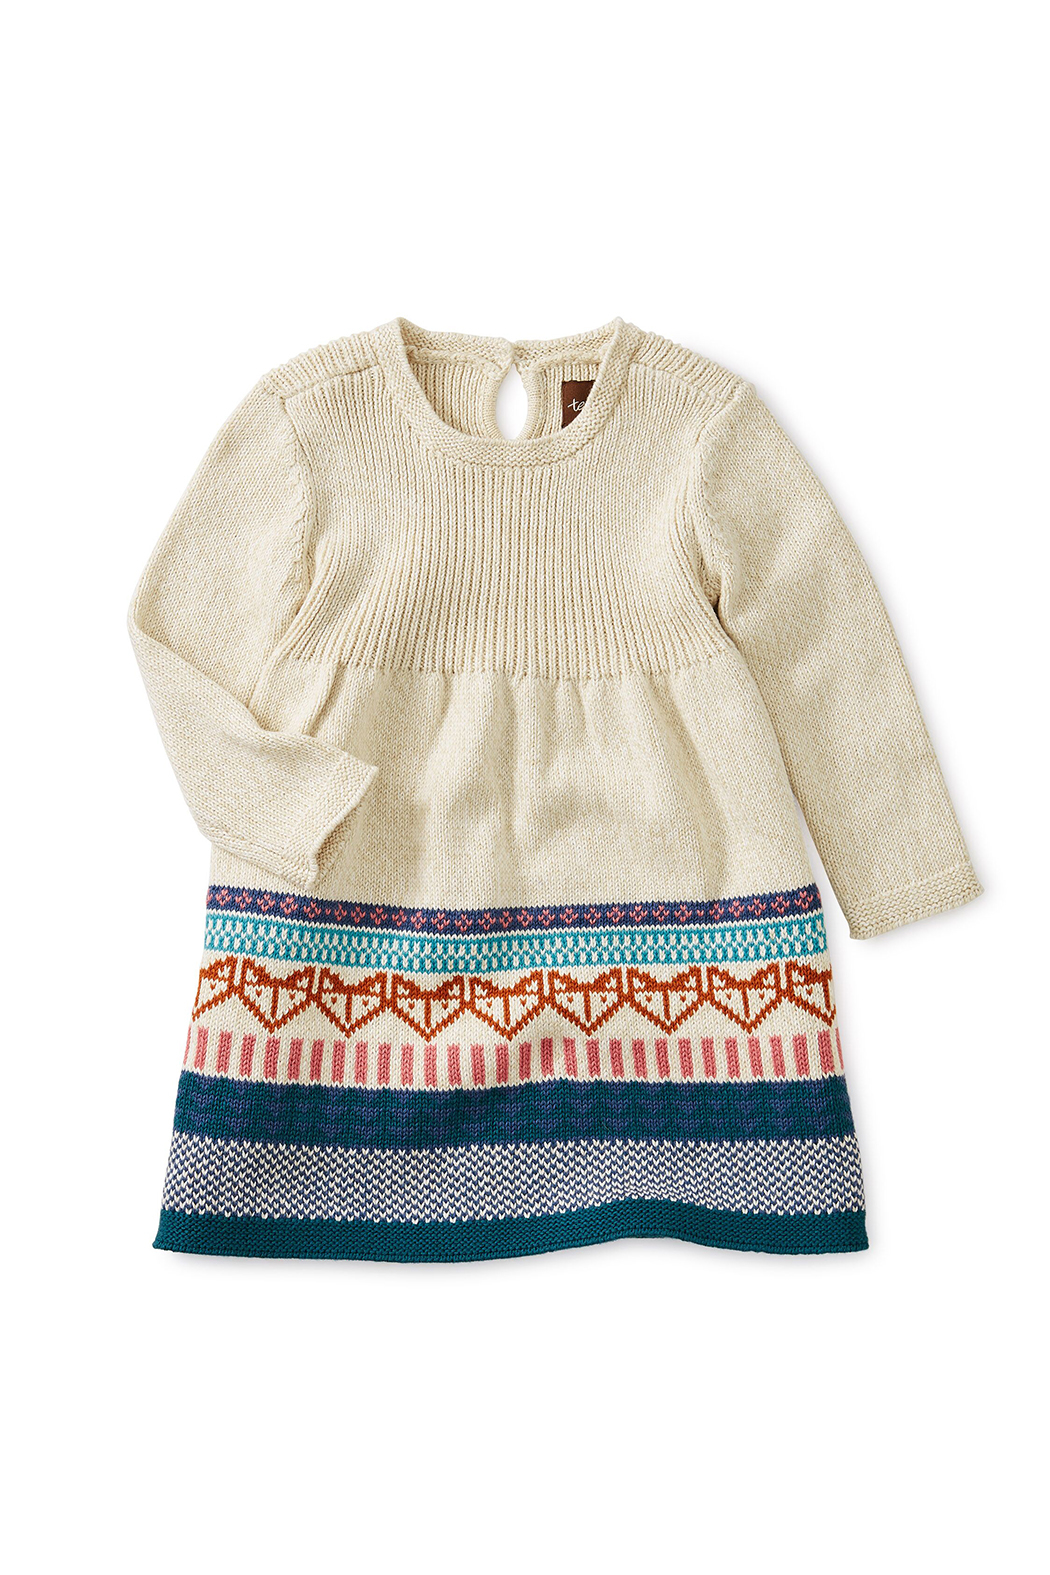 Tea Collection Fox Fairisle Baby Sweater Dress - Main Image